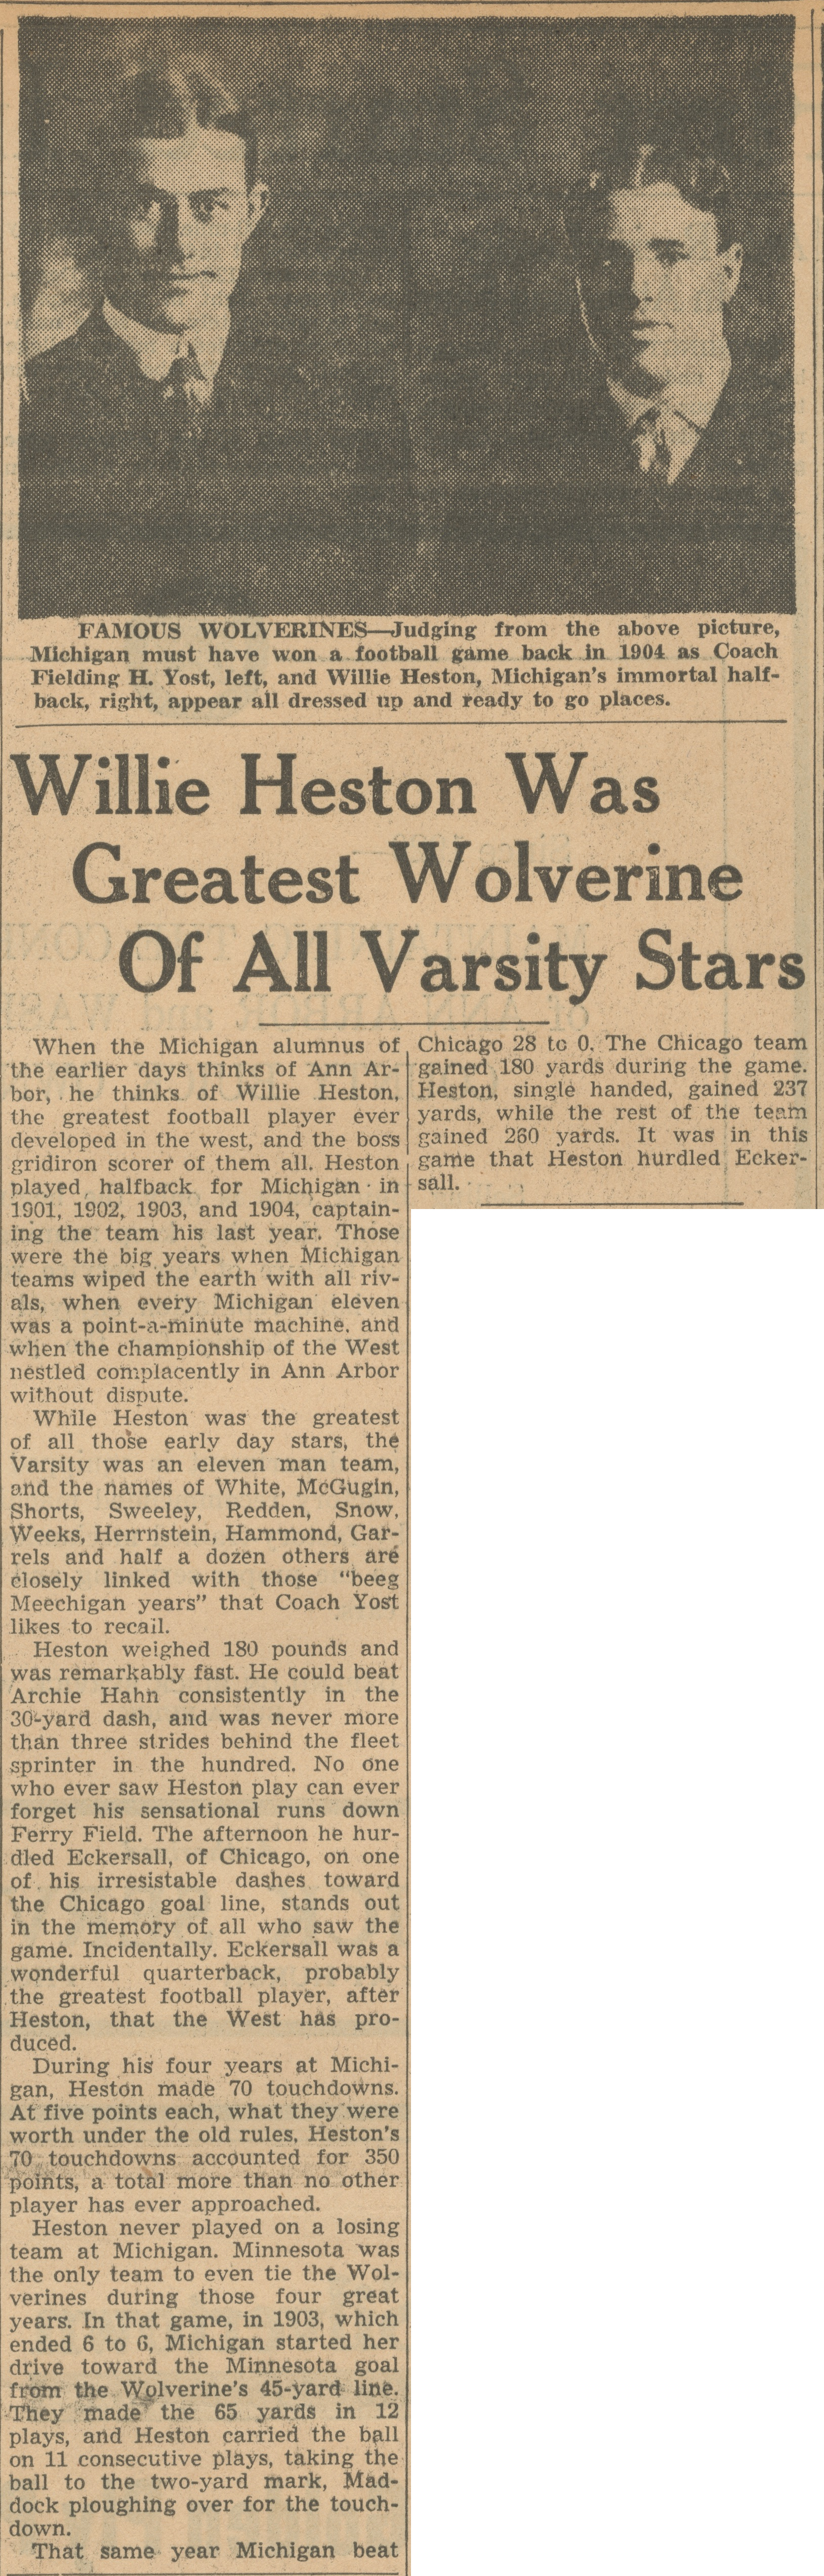 Willie Heston Was Greatest Wolverine Of All Varsity Stars image